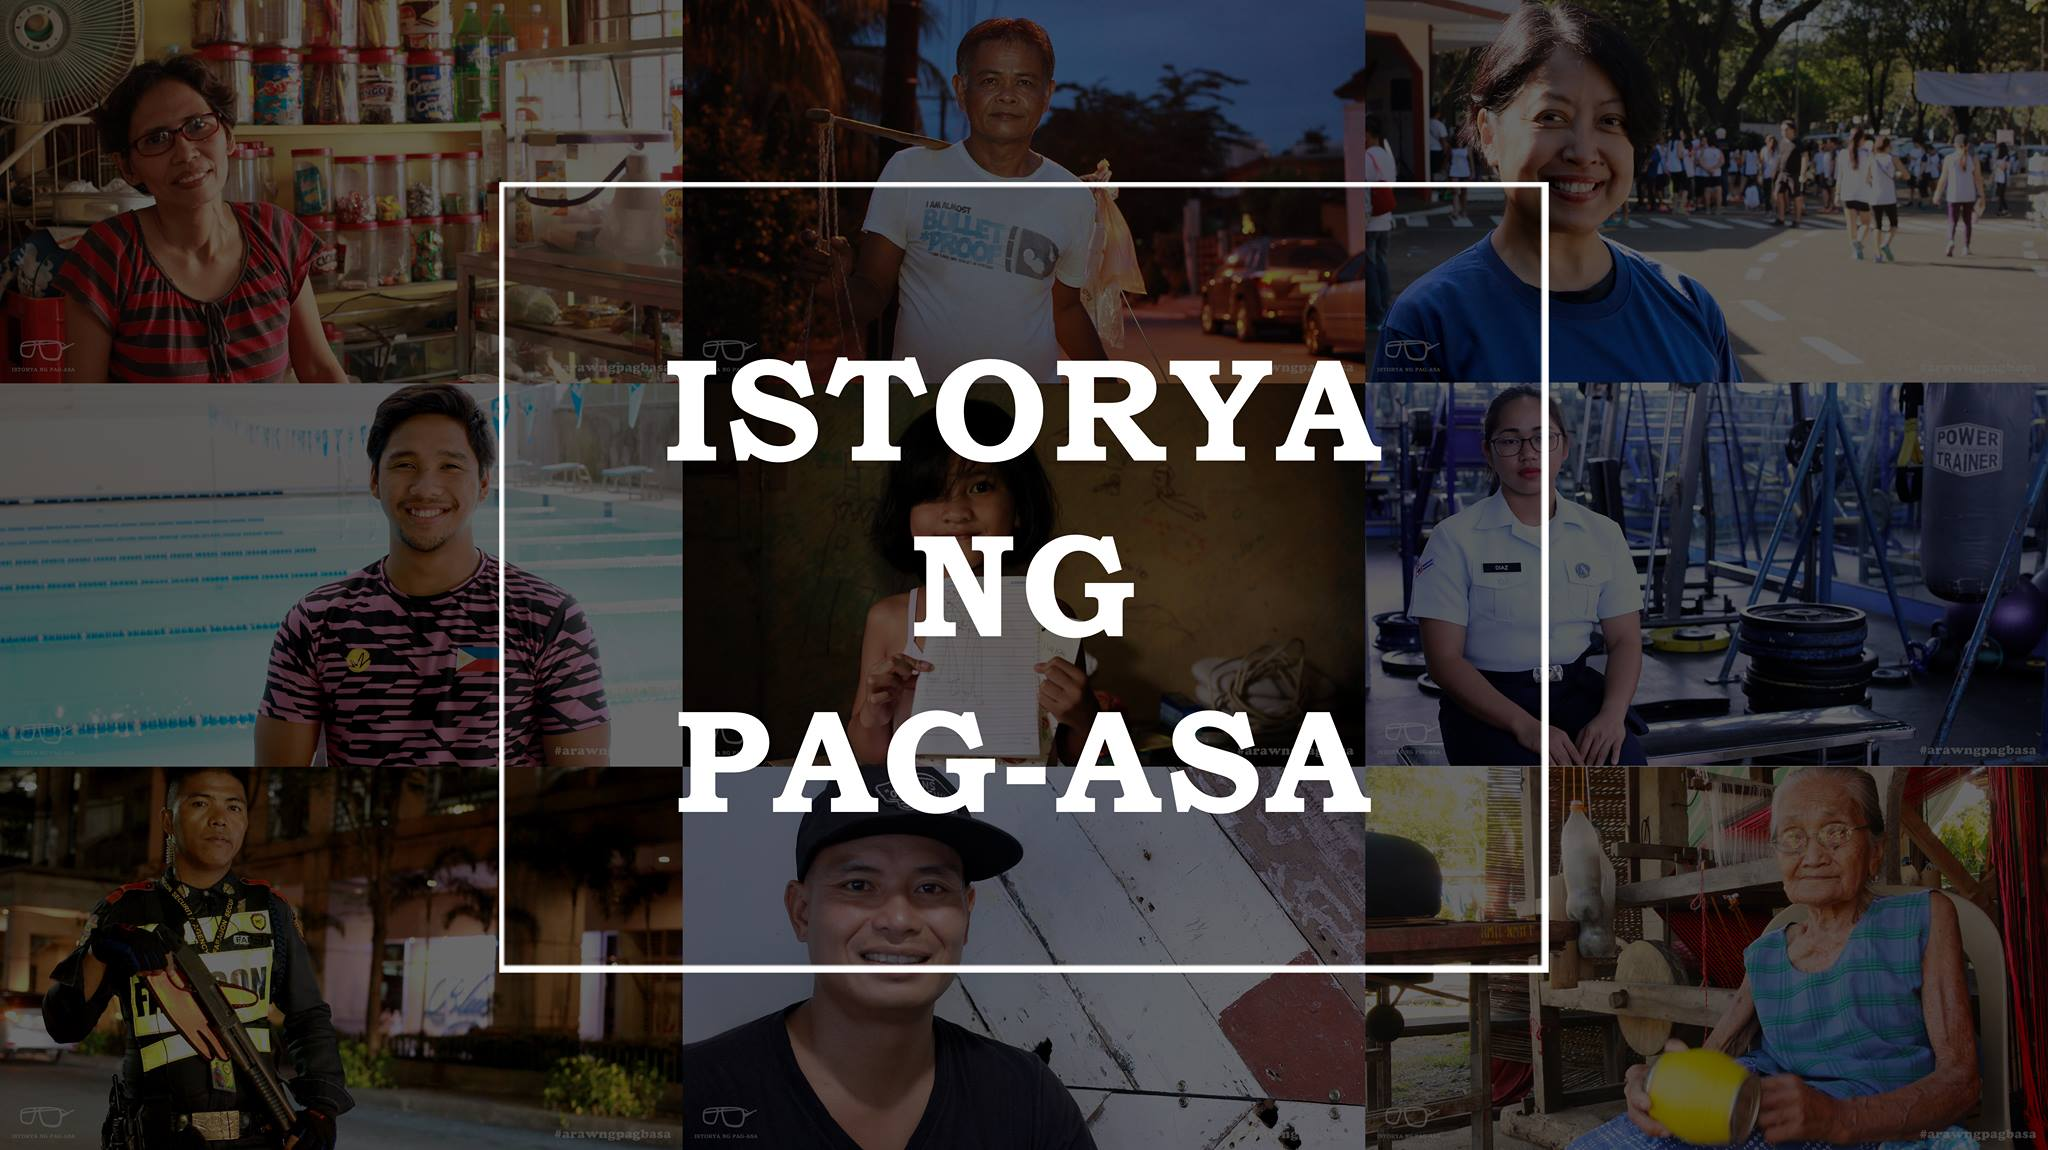 Millennials PH‎Istorya ng Pag-asa Like This Page · June 19 ·    Istorya ng Pag-asa Public · Hosted by Millennials PH GoingShare clock Tomorrow at 3 PM - 8 PM Tomorrow · 26–31° Heavy Thunderstorm pin Show Map Cuneta Astrodome Roxas Boulevard, Pasay City, Philippines ISTORYA NG PAG-ASA SOC MED LAUNCH Istorya ng Pag-asa was born out of the need to change the national  conversation.  We want to share the extraordinary stories of ordinary people and bring them to every school, mall, bus station and, ultimately, to every Filipino all over the world. Our aim is to inspire and empower Filipinos, especially in today's atmosphere of fear and negativity. More to this, we'd also like to encourage people that they, too, can be a source of hope for others. Istorya ng Pag-Asa is a traveling photo gallery featuring different stories of hope by the Filipino people. Through words and portraits, this project aims to inspire, empower and be a source of hope for all. Istorya ng Pag-asa was originally a photoblog -- an offshoot of Araw ng Pagbasa, Araw ng Pag-asa, an annual  reading advocacy program that began in 2008 in the Third District of Quezon City.  Today, Istorya ng Pag-asa continues to grow with stories of hope sourced from local communities, with the help of different socio-civic groups and local government units.  Istorya ng Pag-asa continues to expand its reach to all corners of the country, with the support of partners and stakeholders from Quezon City, Cebu, Cagayan de Oro, Naga, Baguio and Dumaguete.  Come join us and help us share these stories of hope! Free Admission